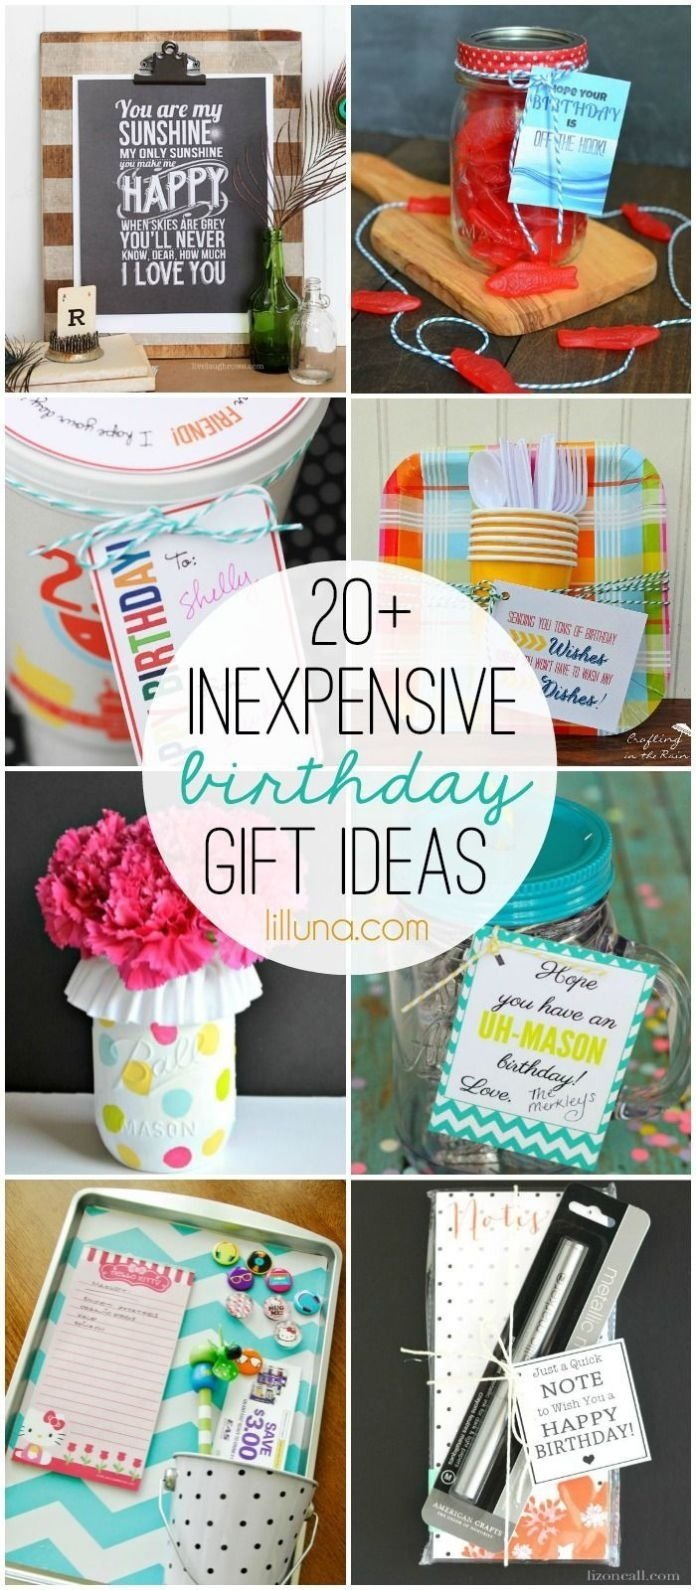 10 Most Recommended Relief Society Birthday Gift Ideas diy crafts ideas inexpensive birthday gifts relief society 2021